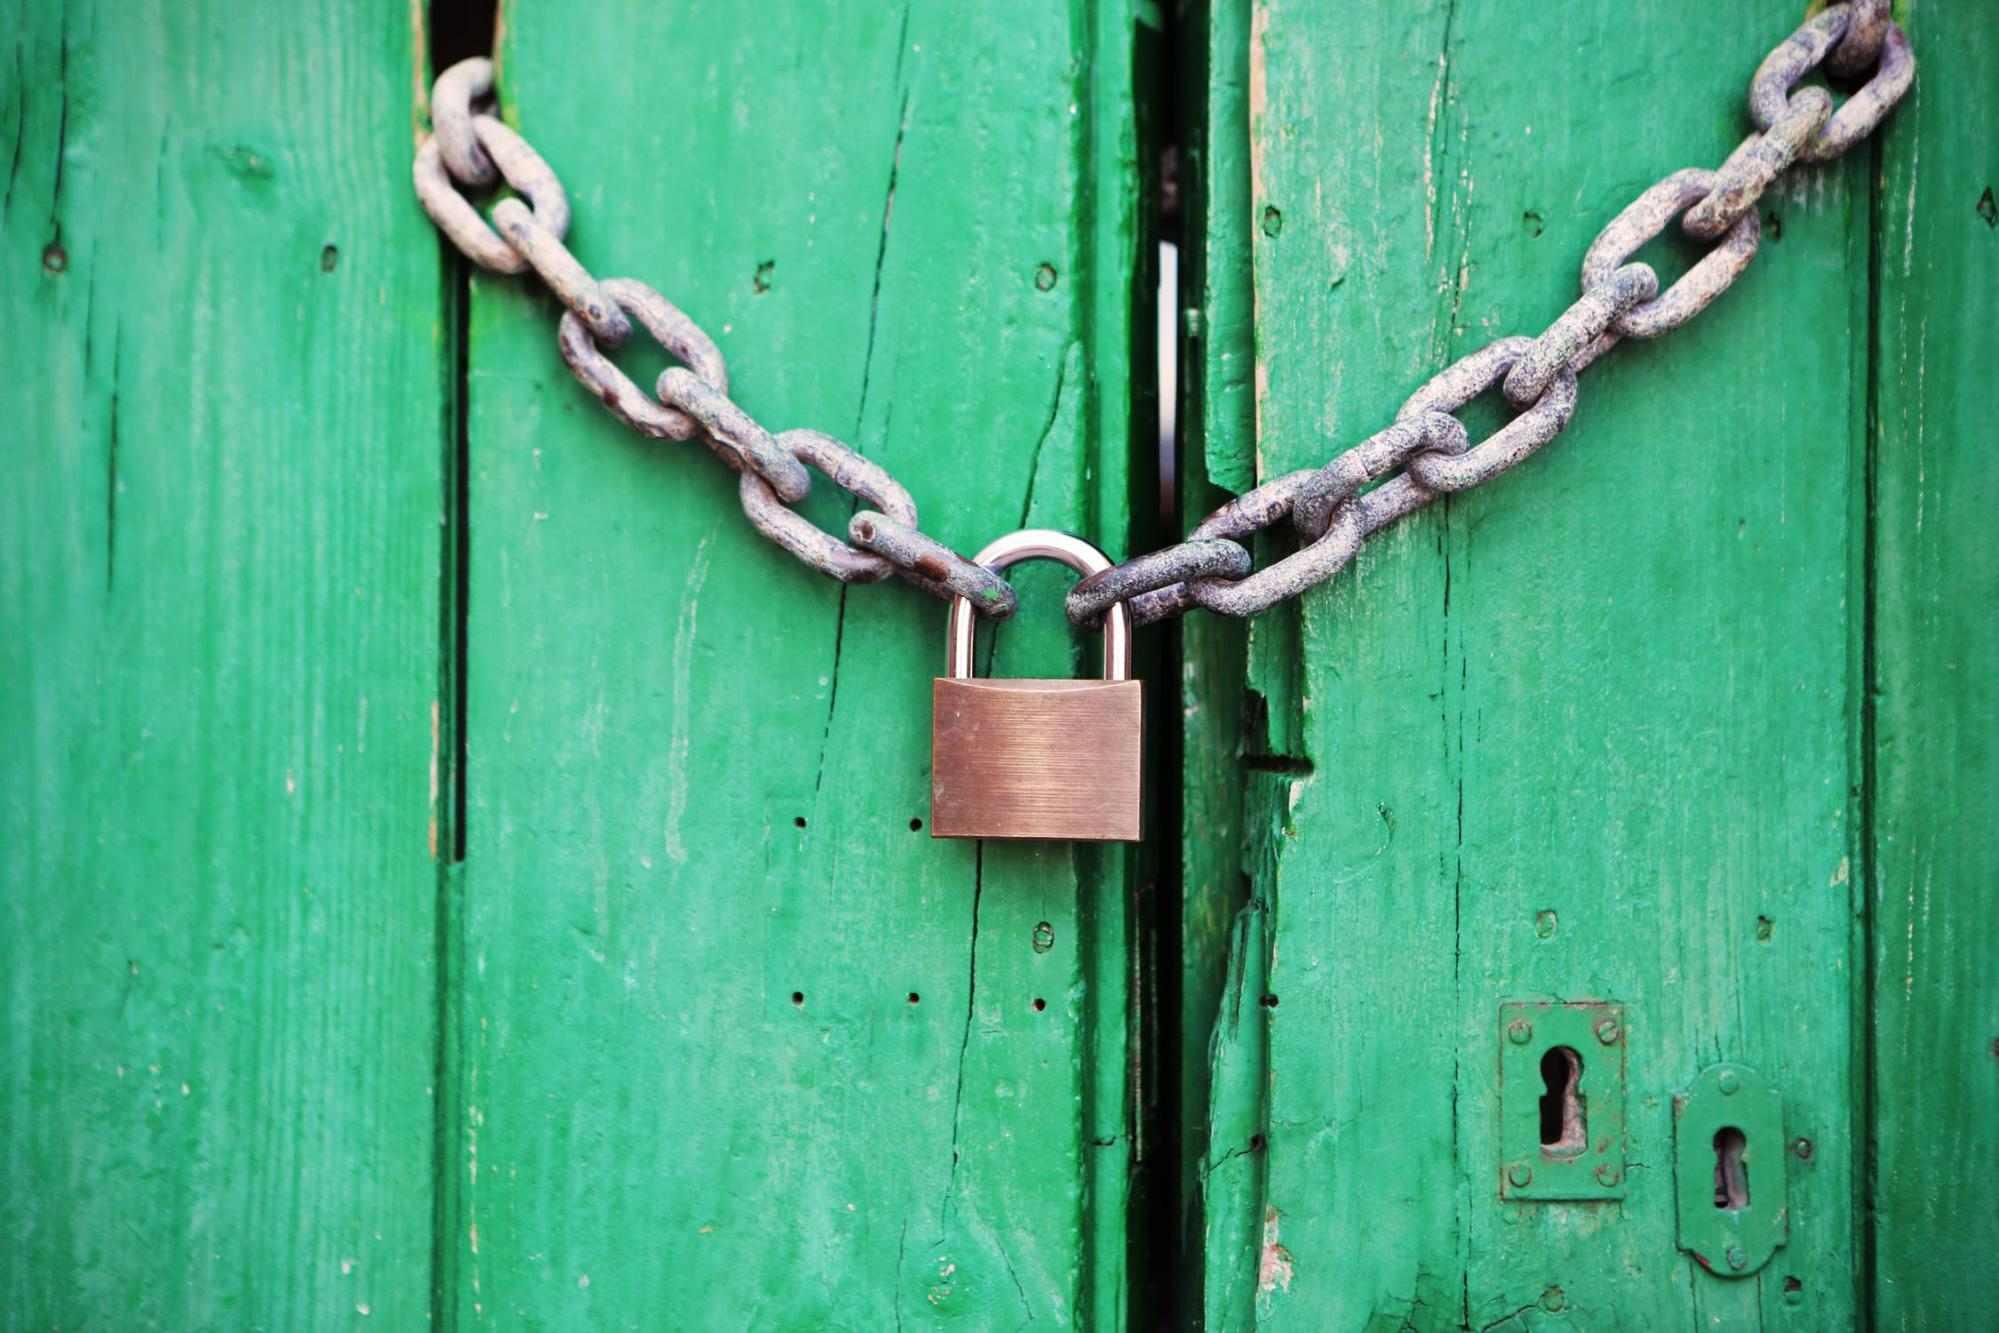 A padlock with a chain link security green wooden doors.